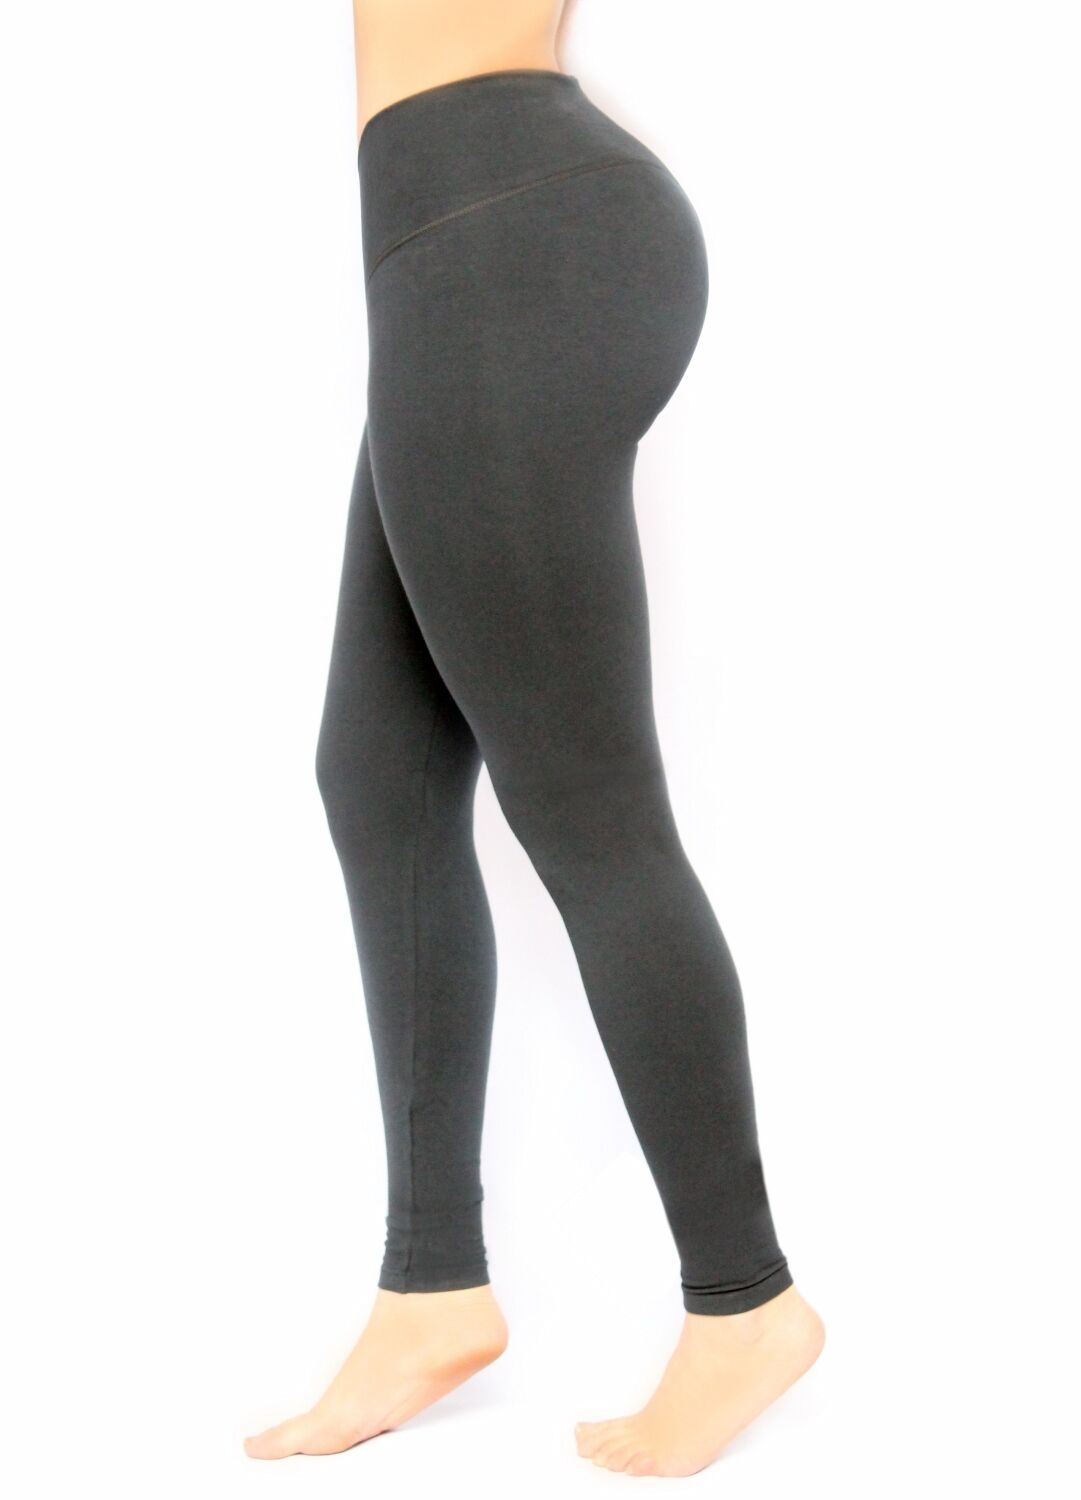 Bon Bon Up Compression Leggings with internal body shaper leggings con faja int